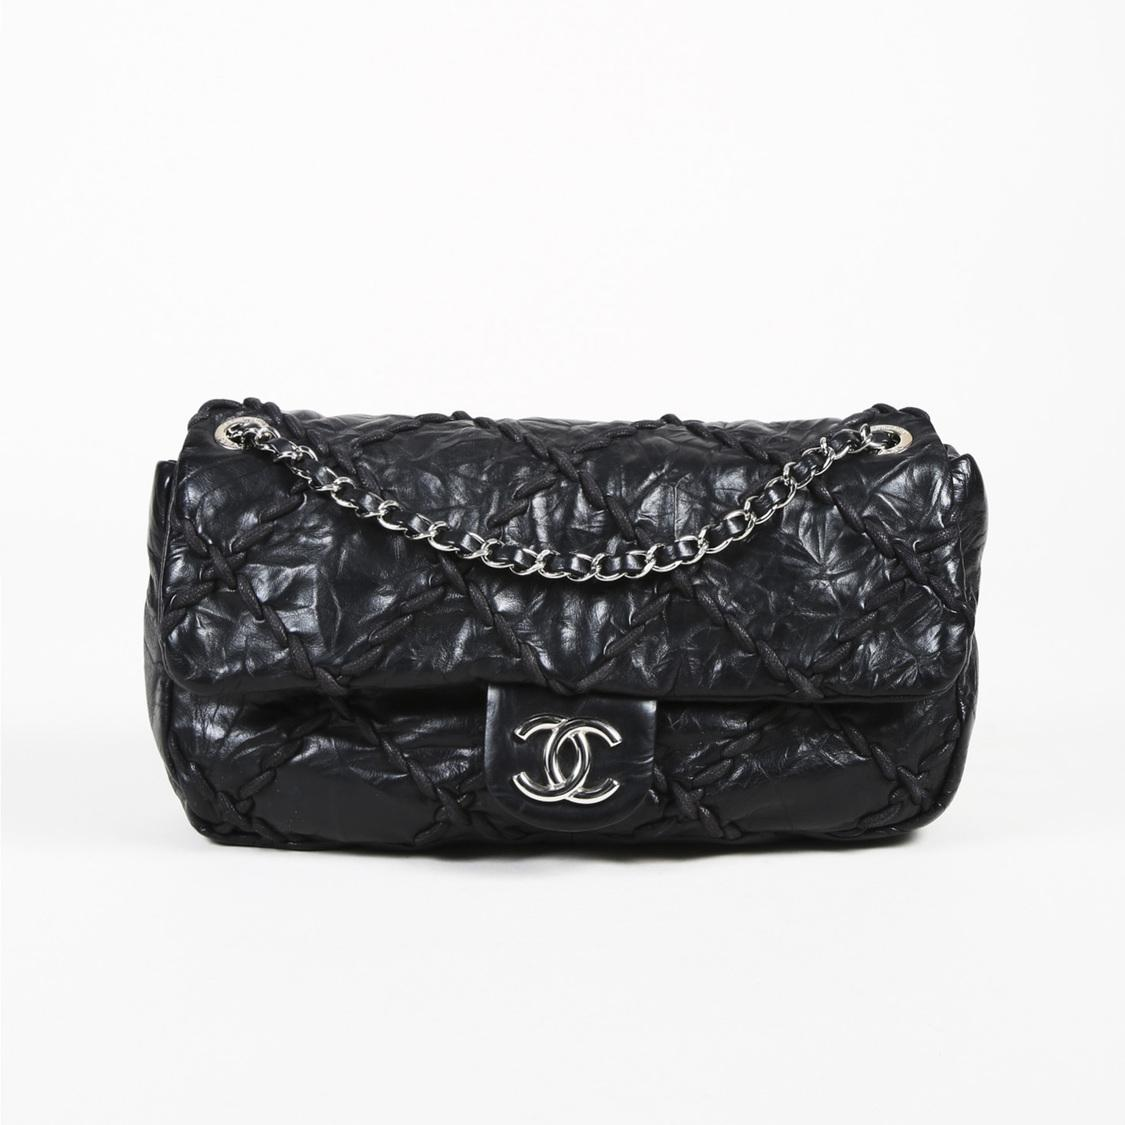 d4f1d9a552e9 Lyst - Chanel Black Quilted Leather Jumbo